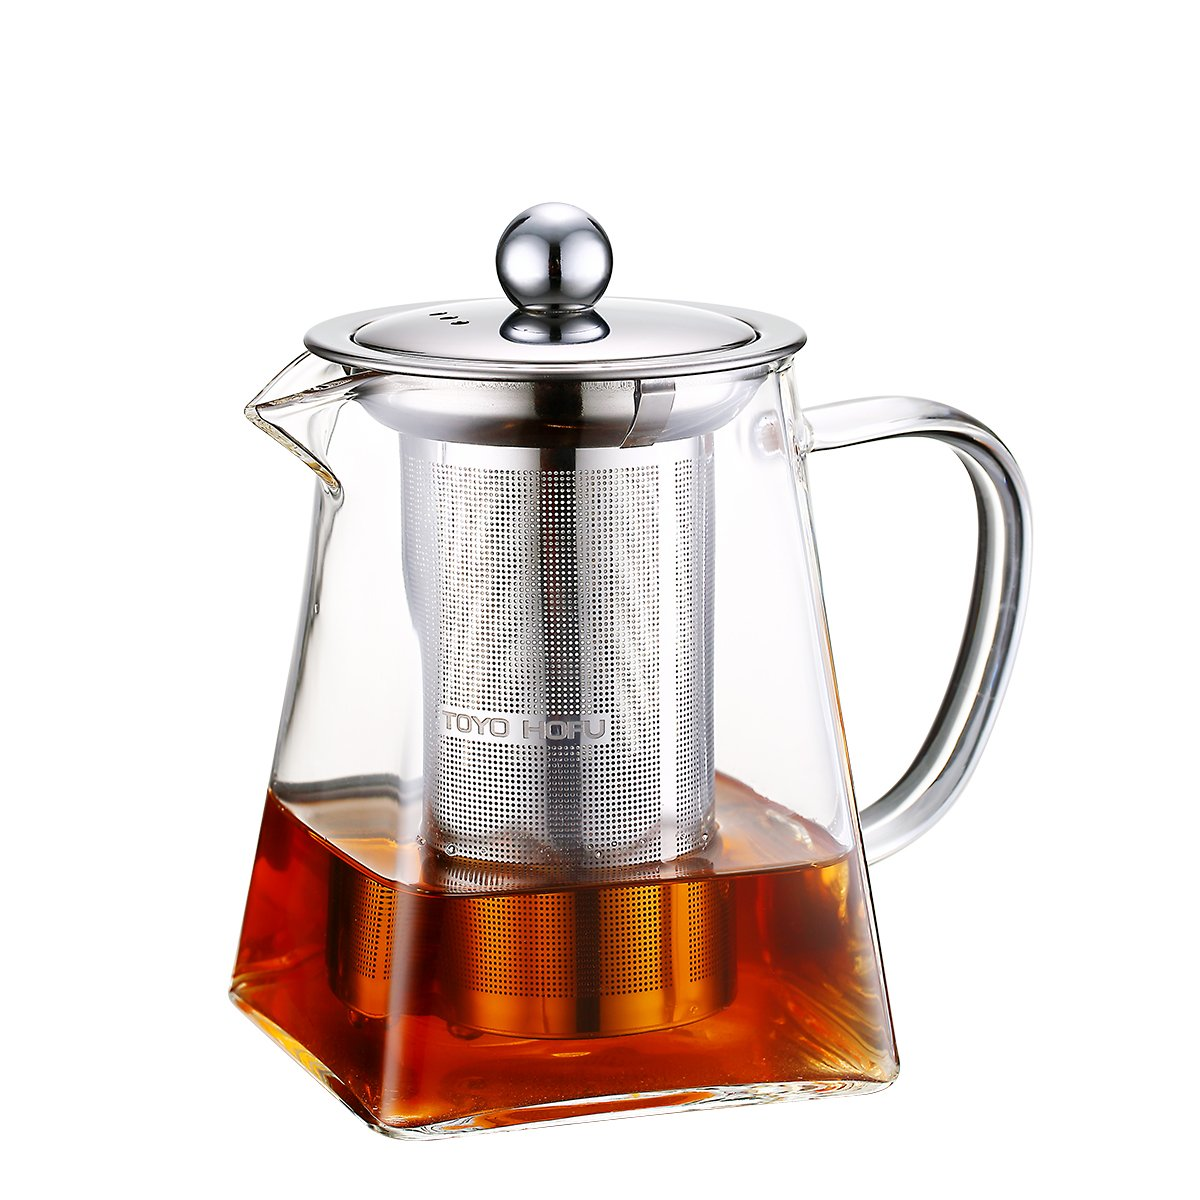 Toyo Hofu Small Clear High Borosilicate Glass Tea Pot with Removable 304 Stainless Steel Infuser, Heat Resistant Loose Leaf Teapot,Stovetop Safe, 600 ml/20 Ounce. by Toyo Hofu